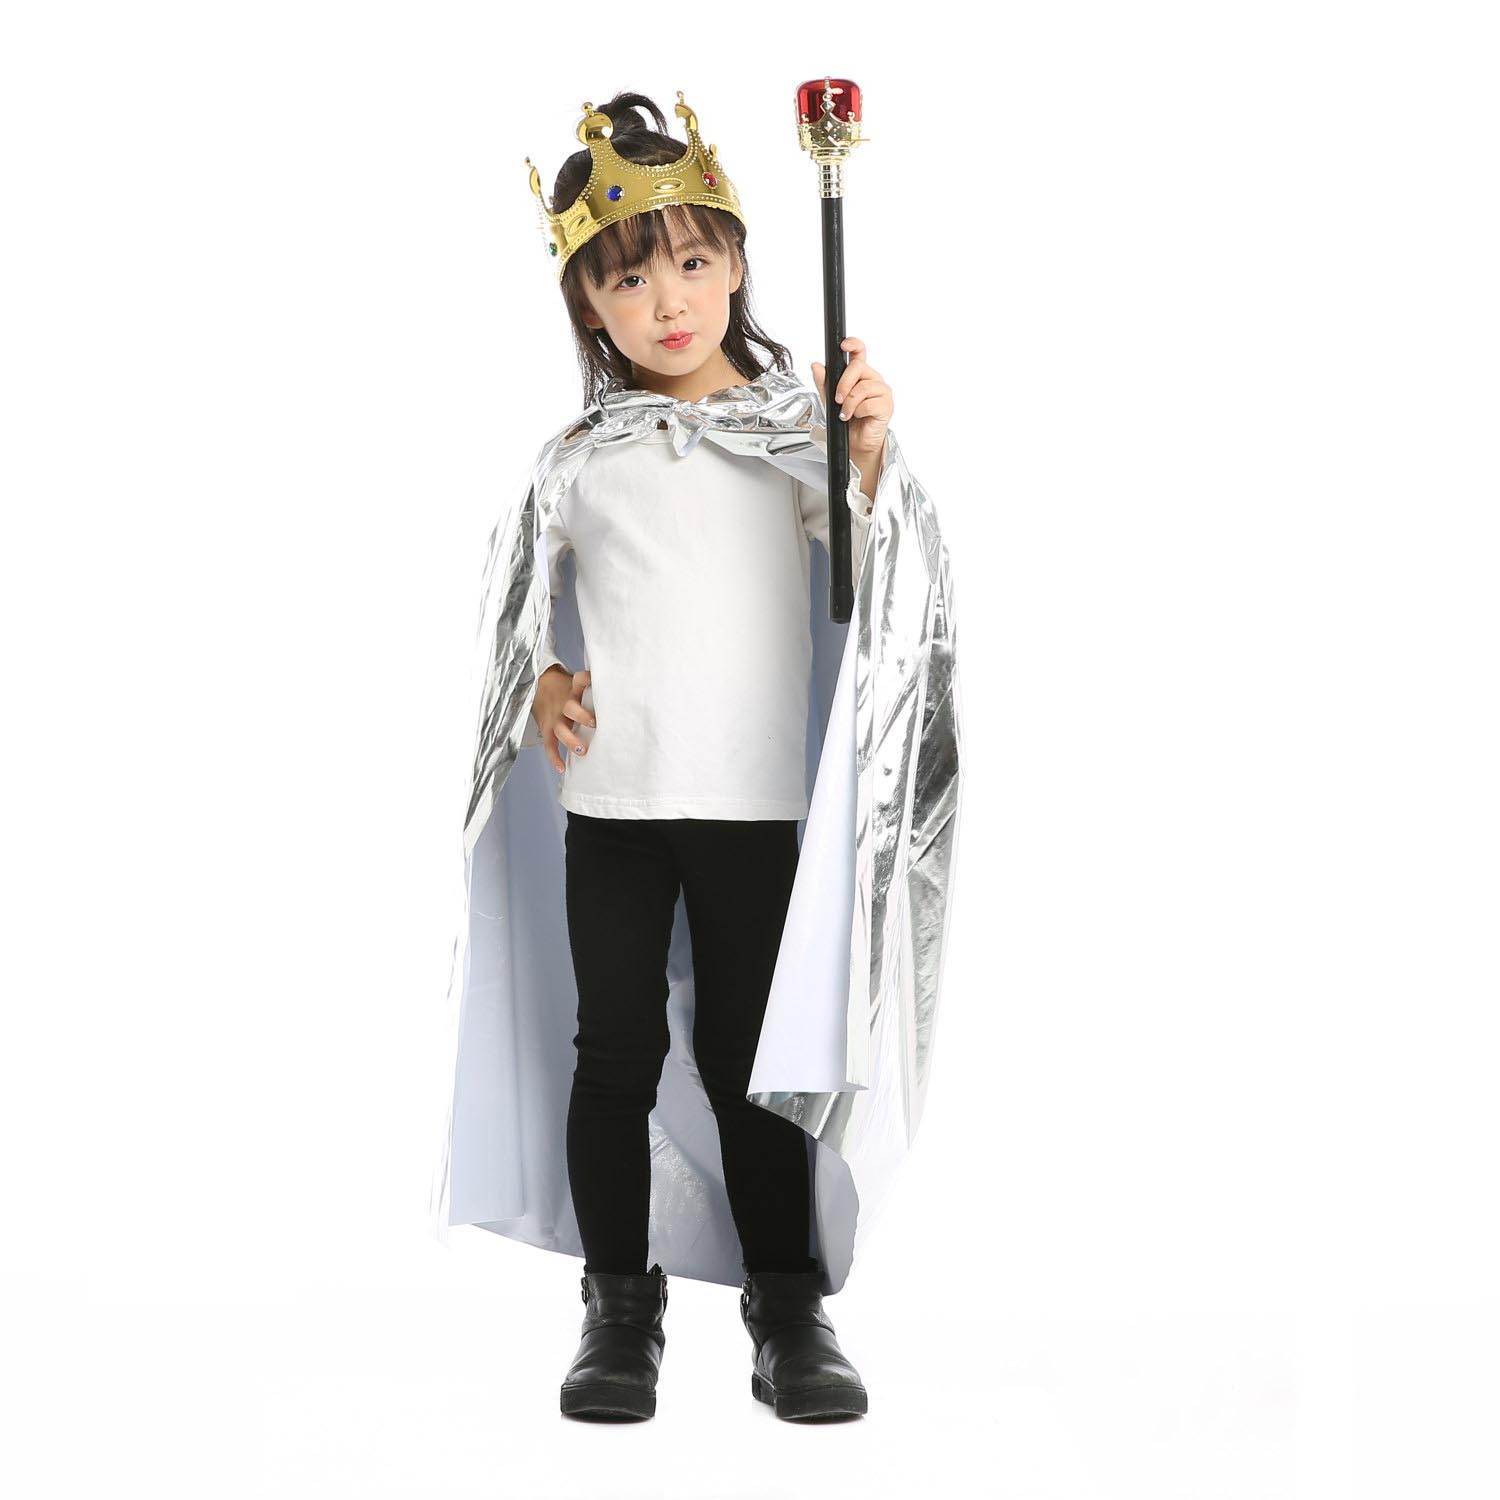 Girl Kids Cloak King Cape Queen Princess Role Play Props Cosplay Crown Sceptre Party Supplies Costume Halloween Christmas